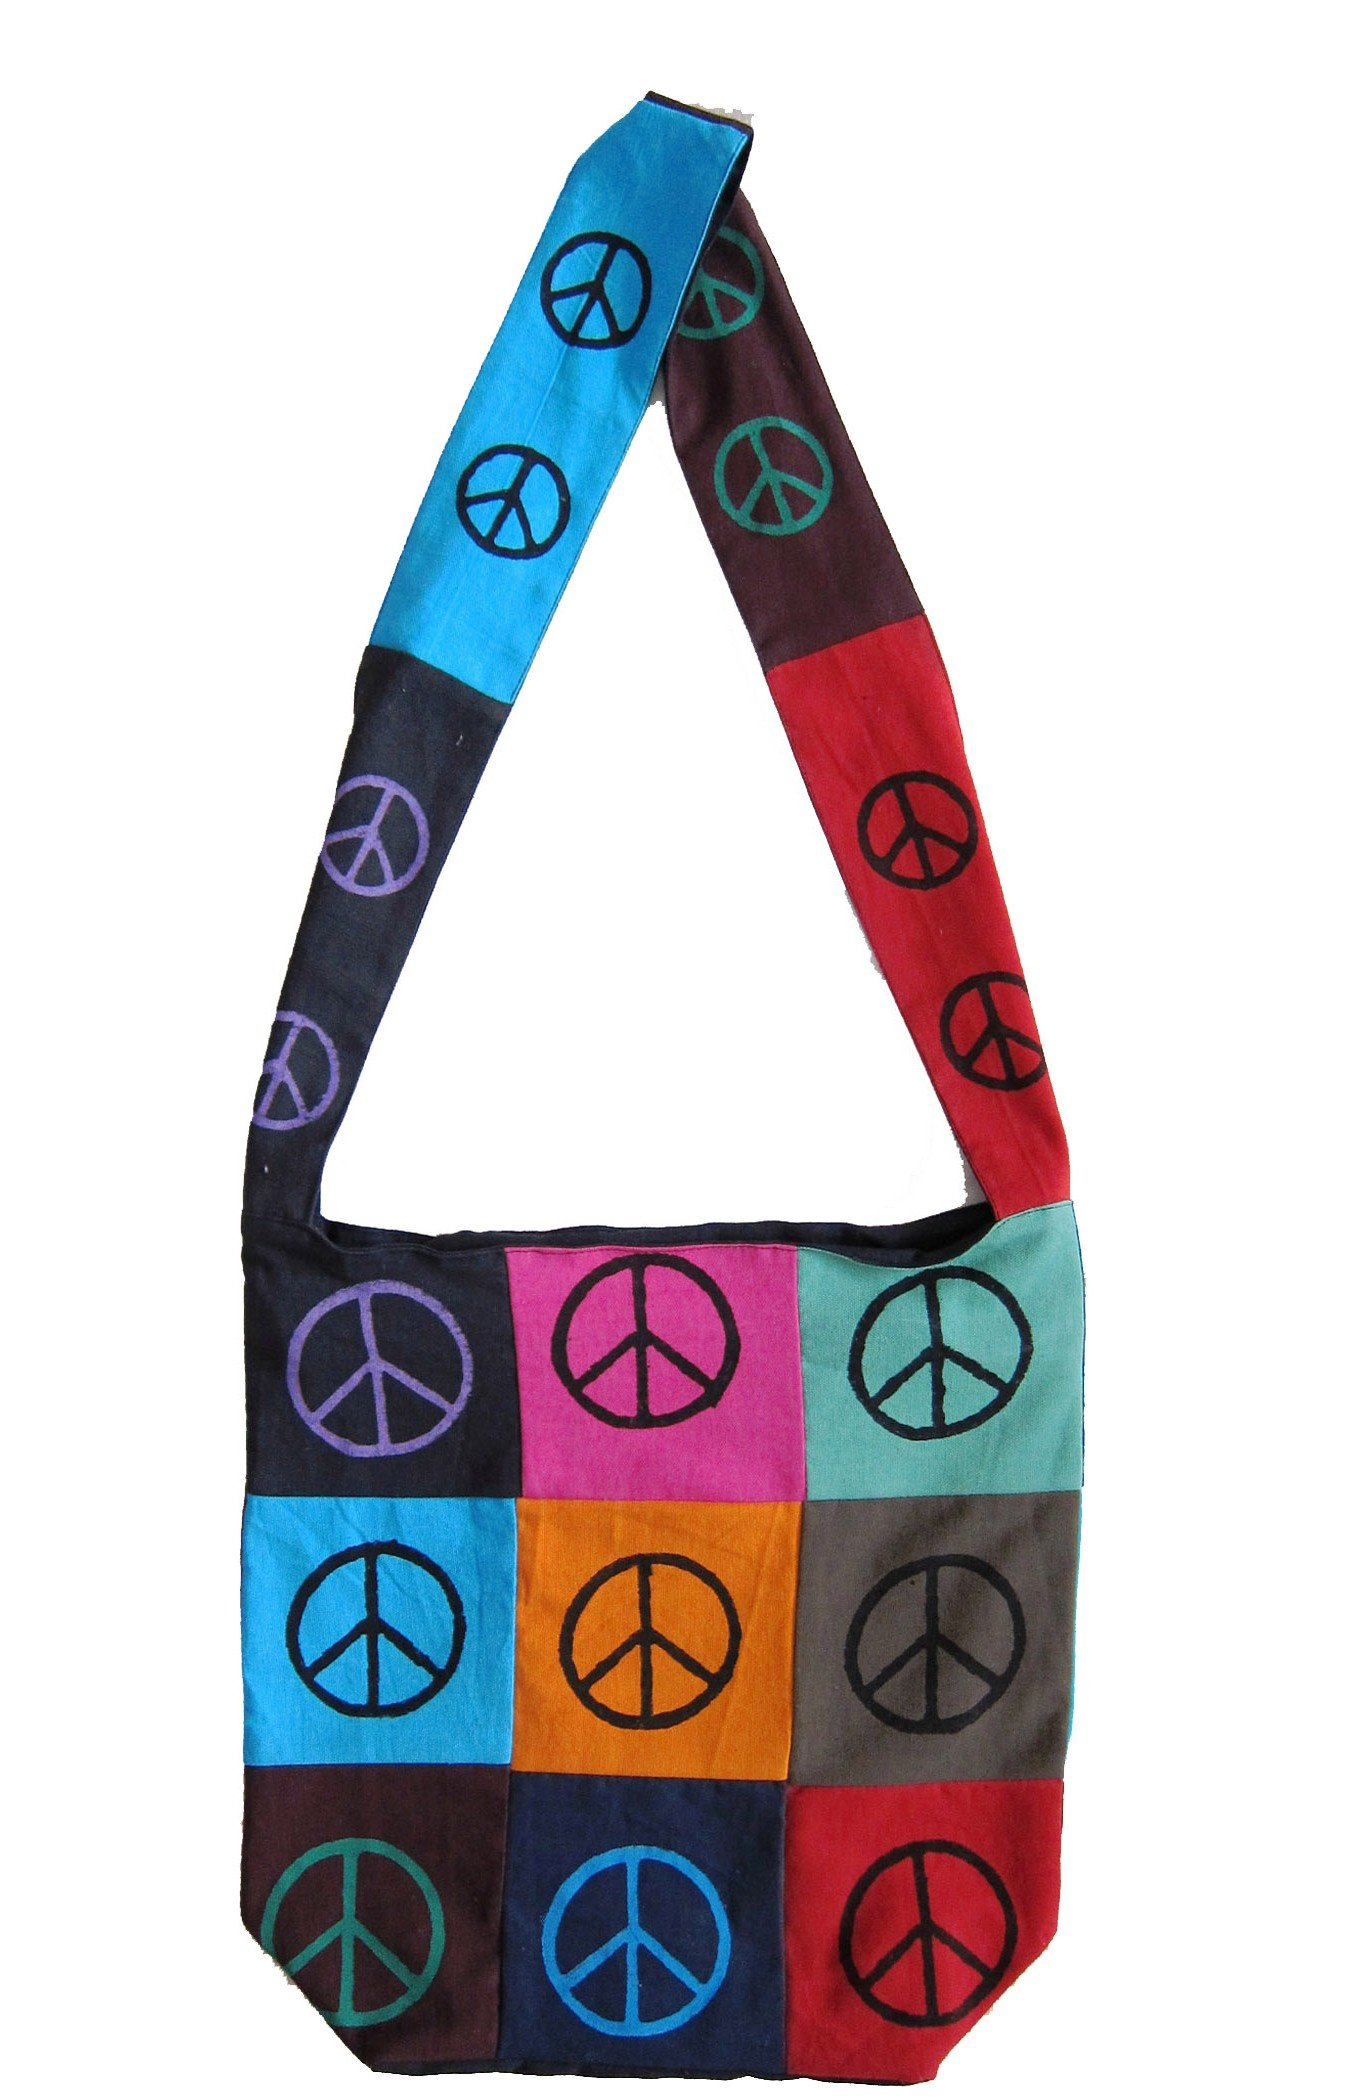 Peace Sign Bag Hobo Cotton Bag Fabric Bags Shoulder Bags for Shopping Work School Tote Bag Flat Bottom 15 x 12 inches (Red, Black, Blue, Pink, Orange)